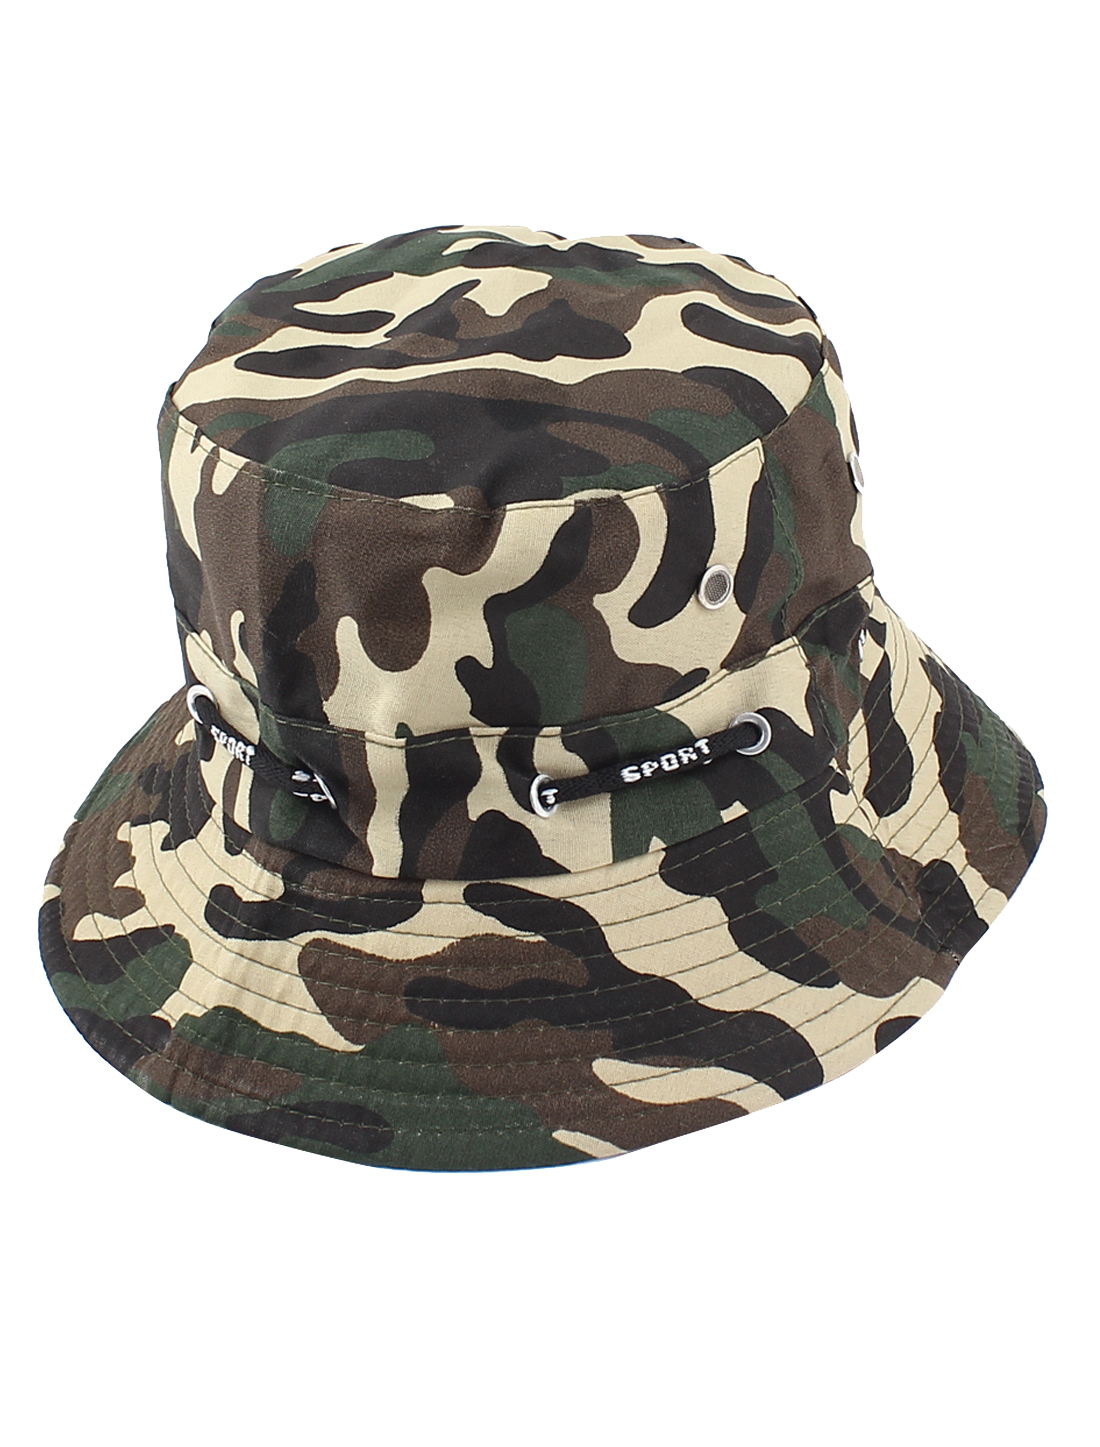 Man Outdoor Hunting Fishing Adjustable Strap Wide Brim Army Green Camouflage Pattern Hat Cap